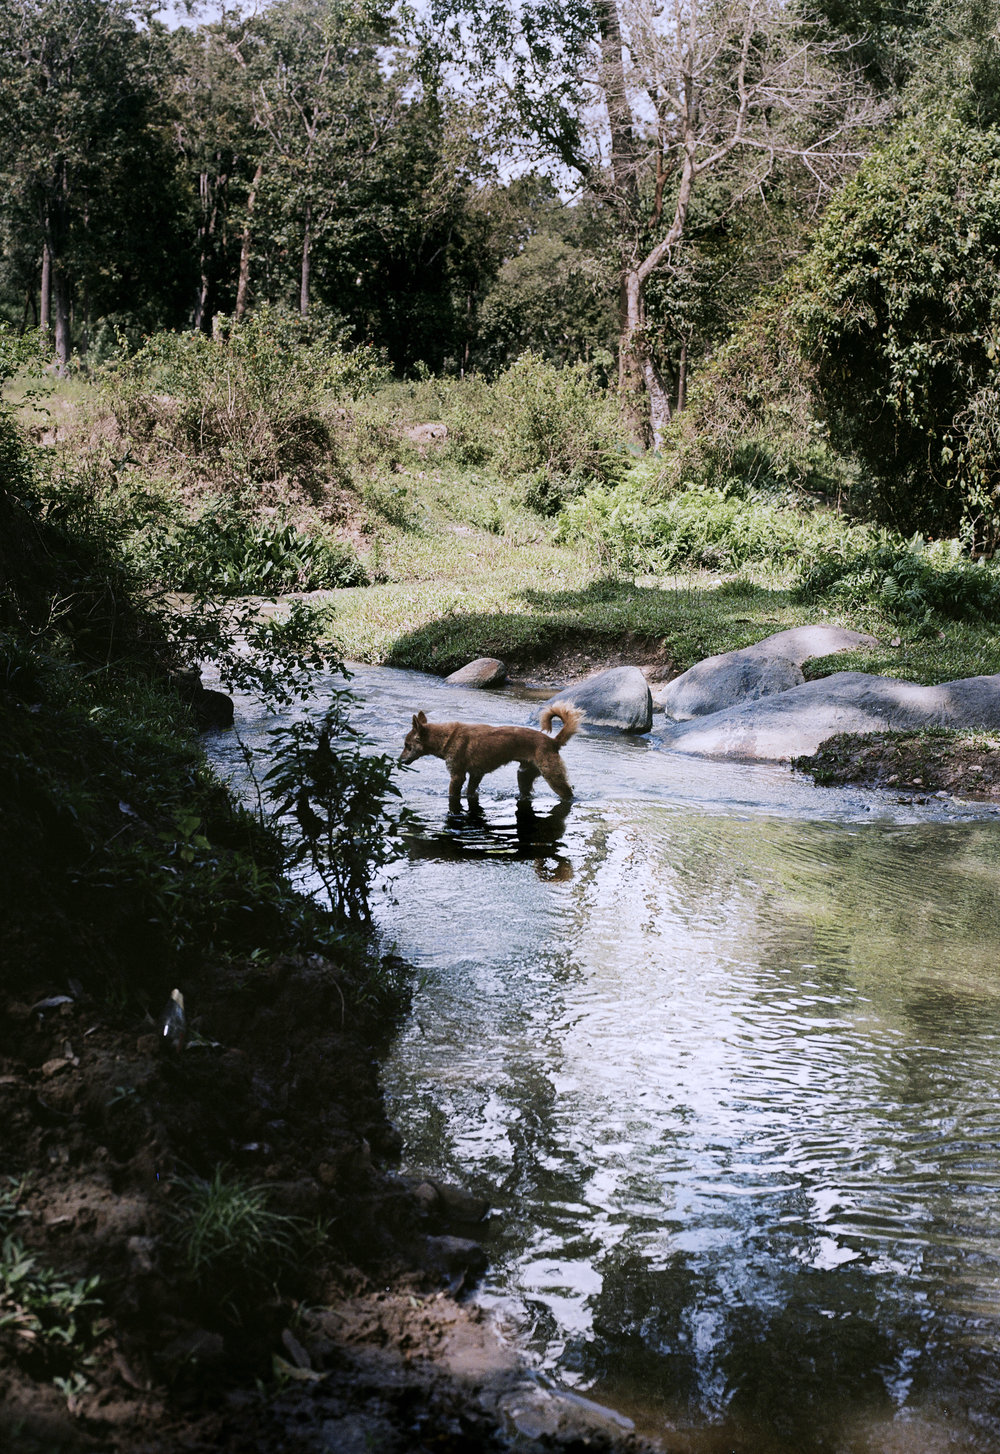 Dogs crossing river in Wayanad, India